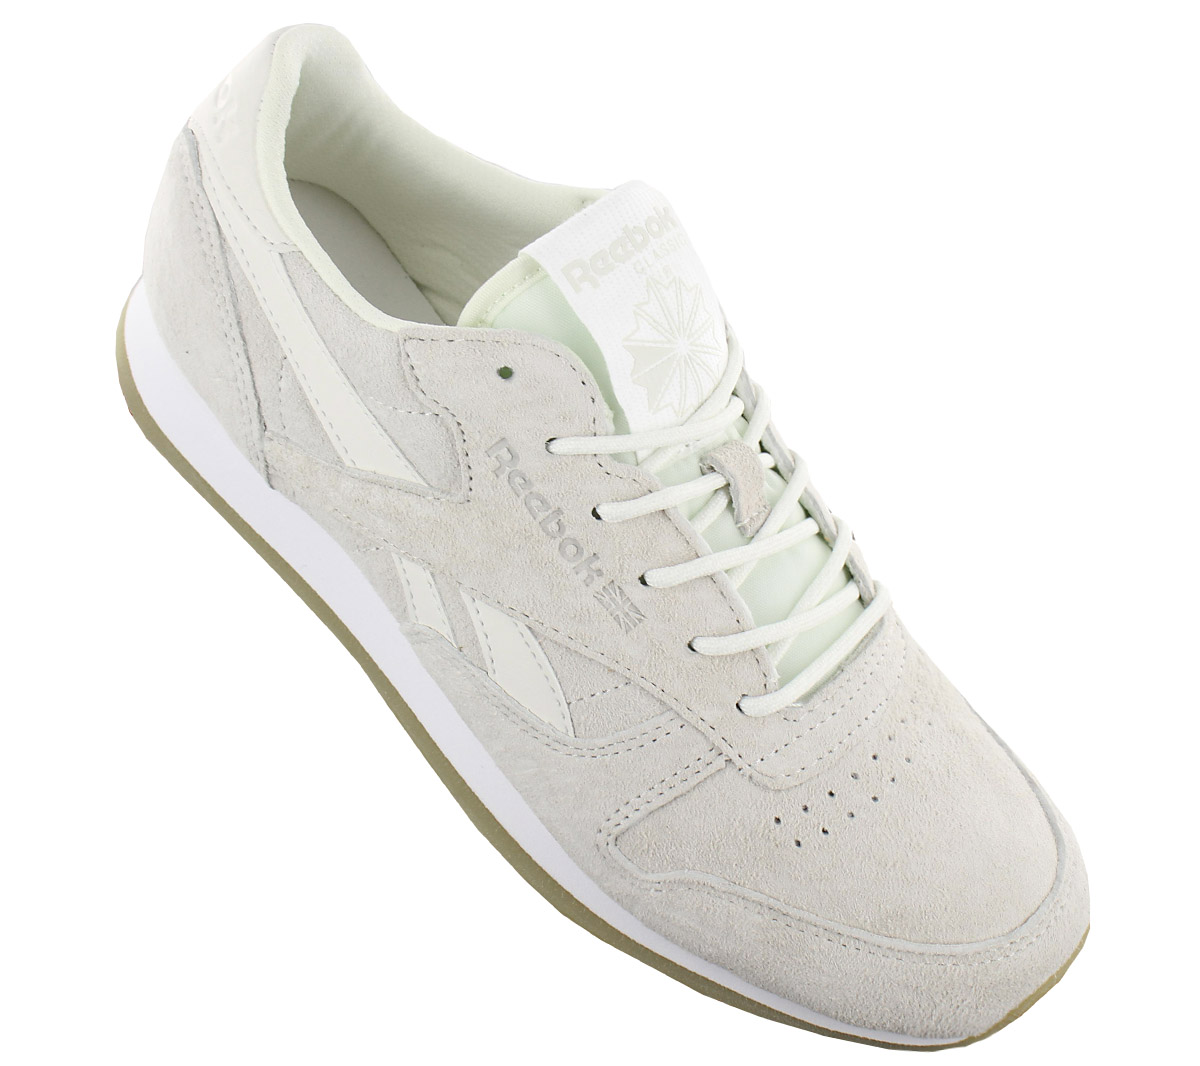 177923a345c96 Reebok Classic Leather Crepe Sail Away Ladies Sneaker Shoes Rbk Cl ...